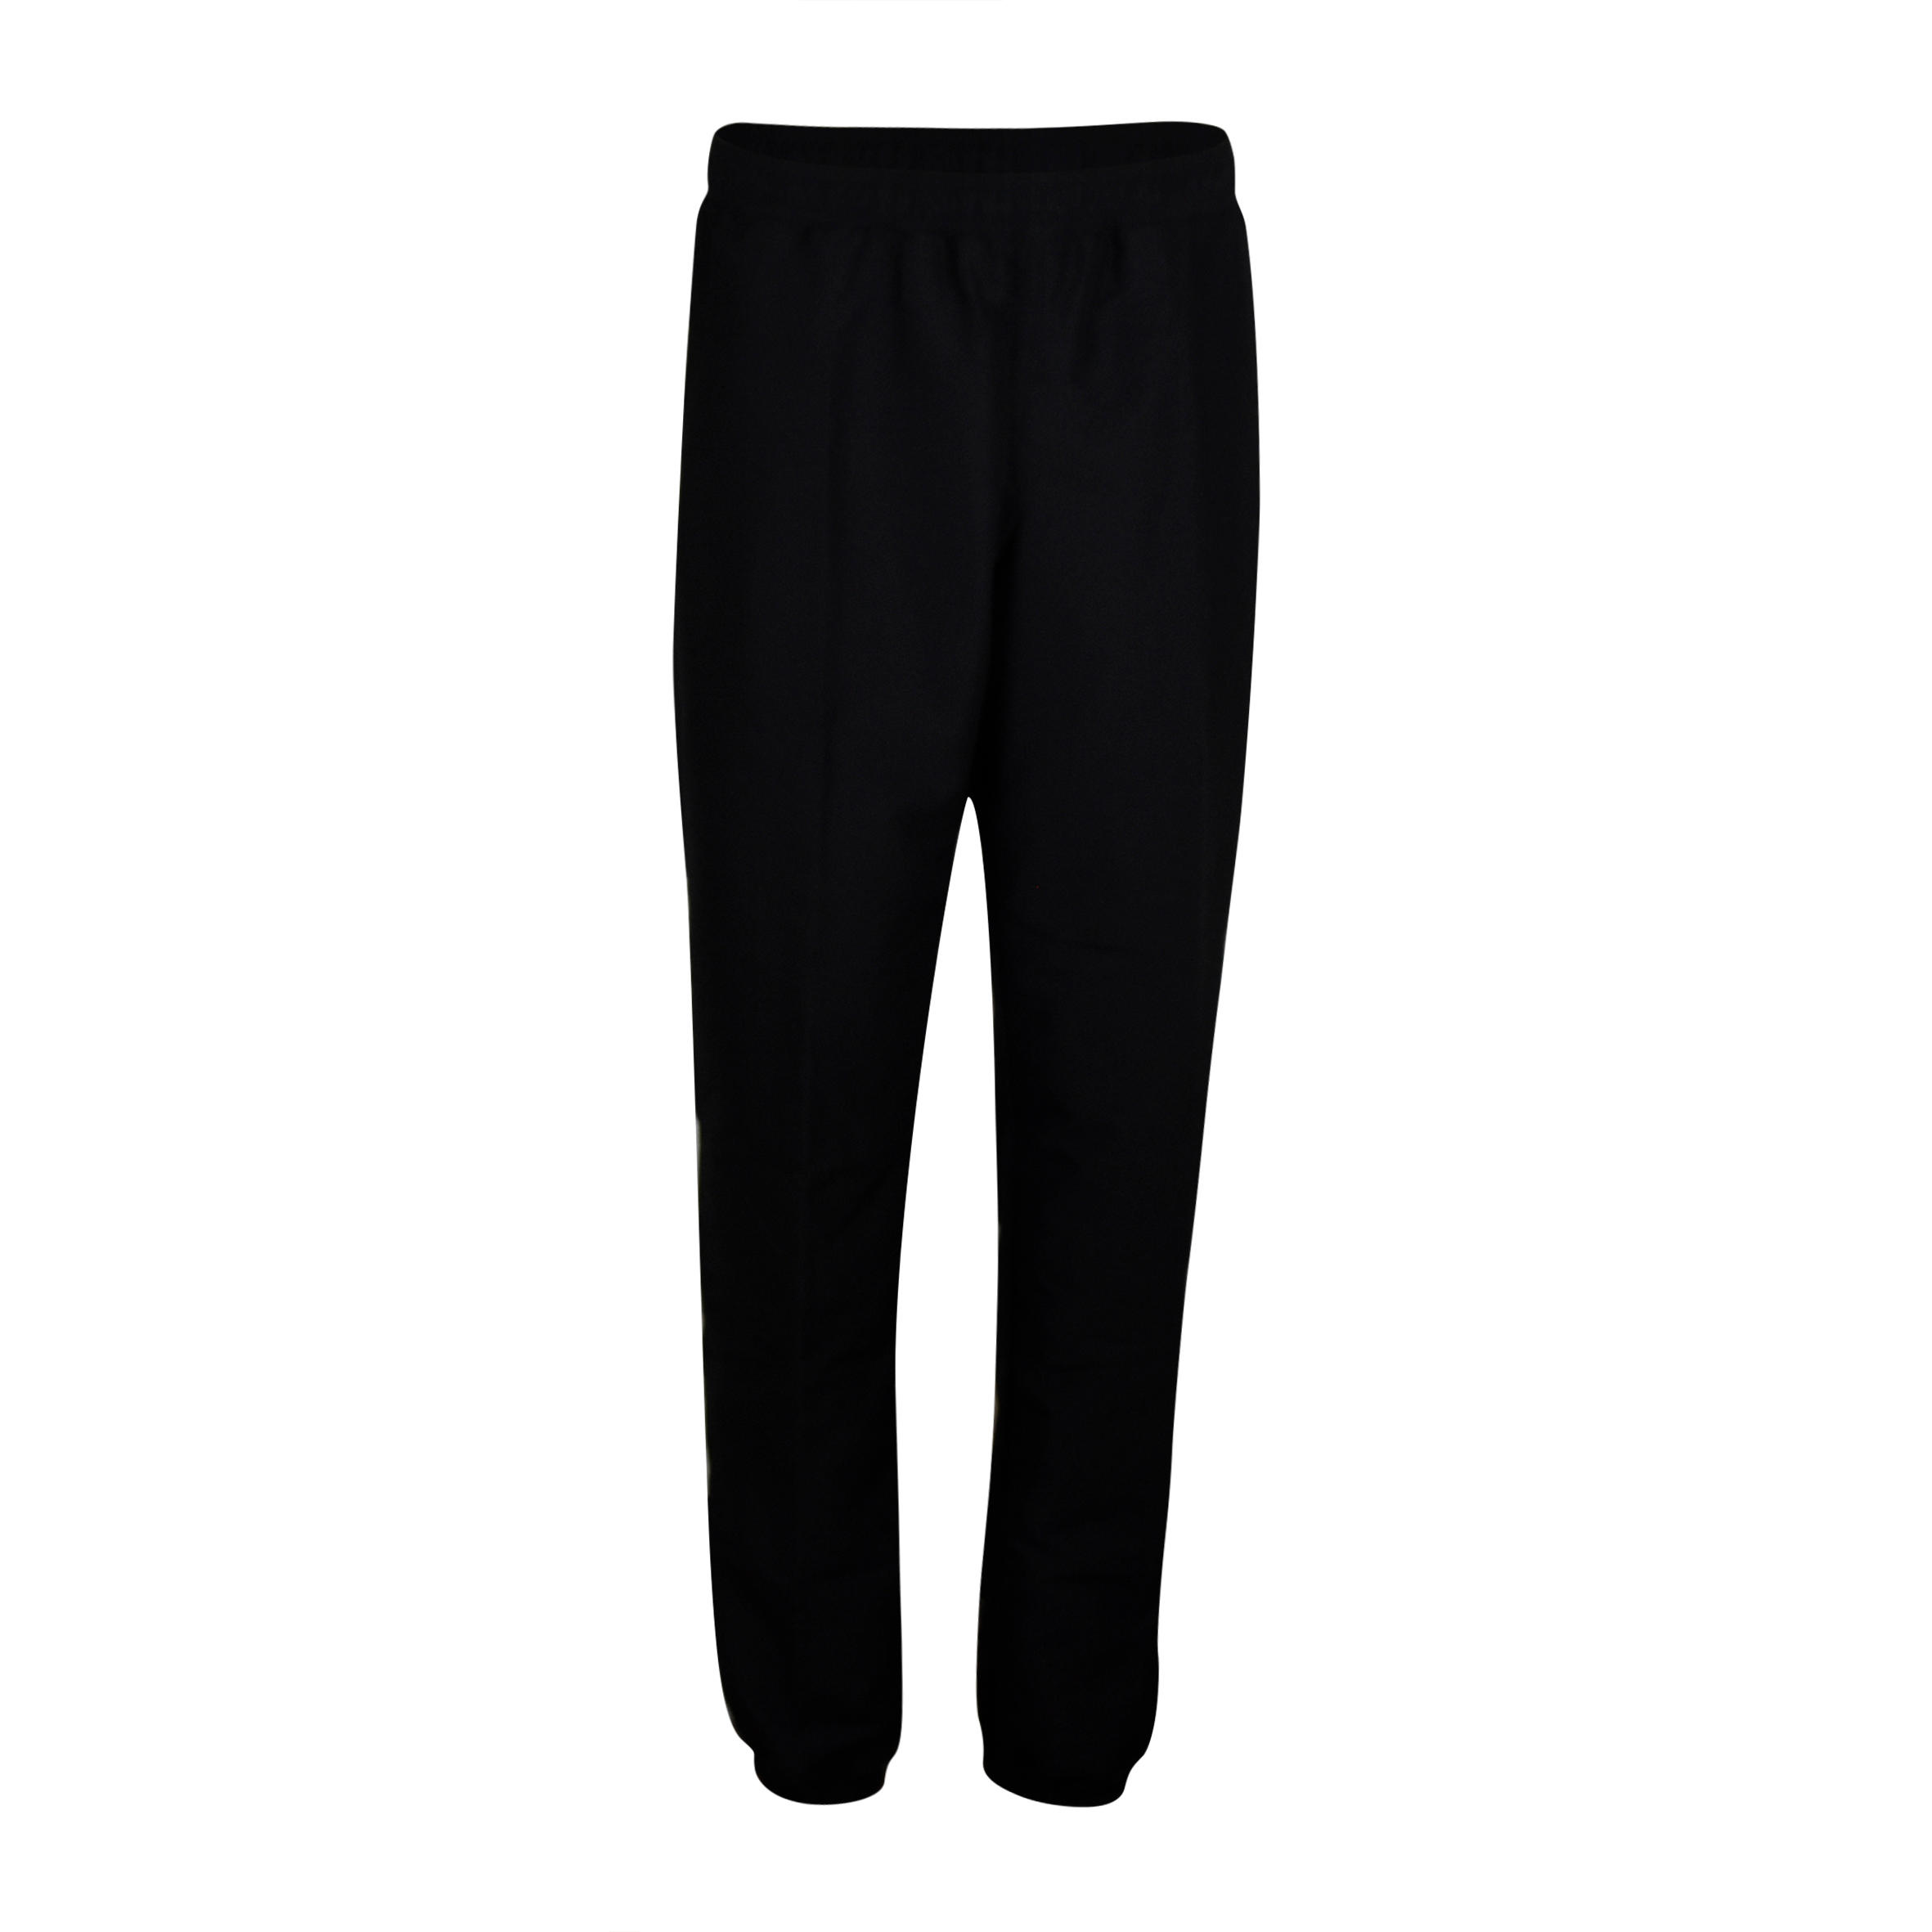 FPA100 Fitness Cardio Bottoms - Black